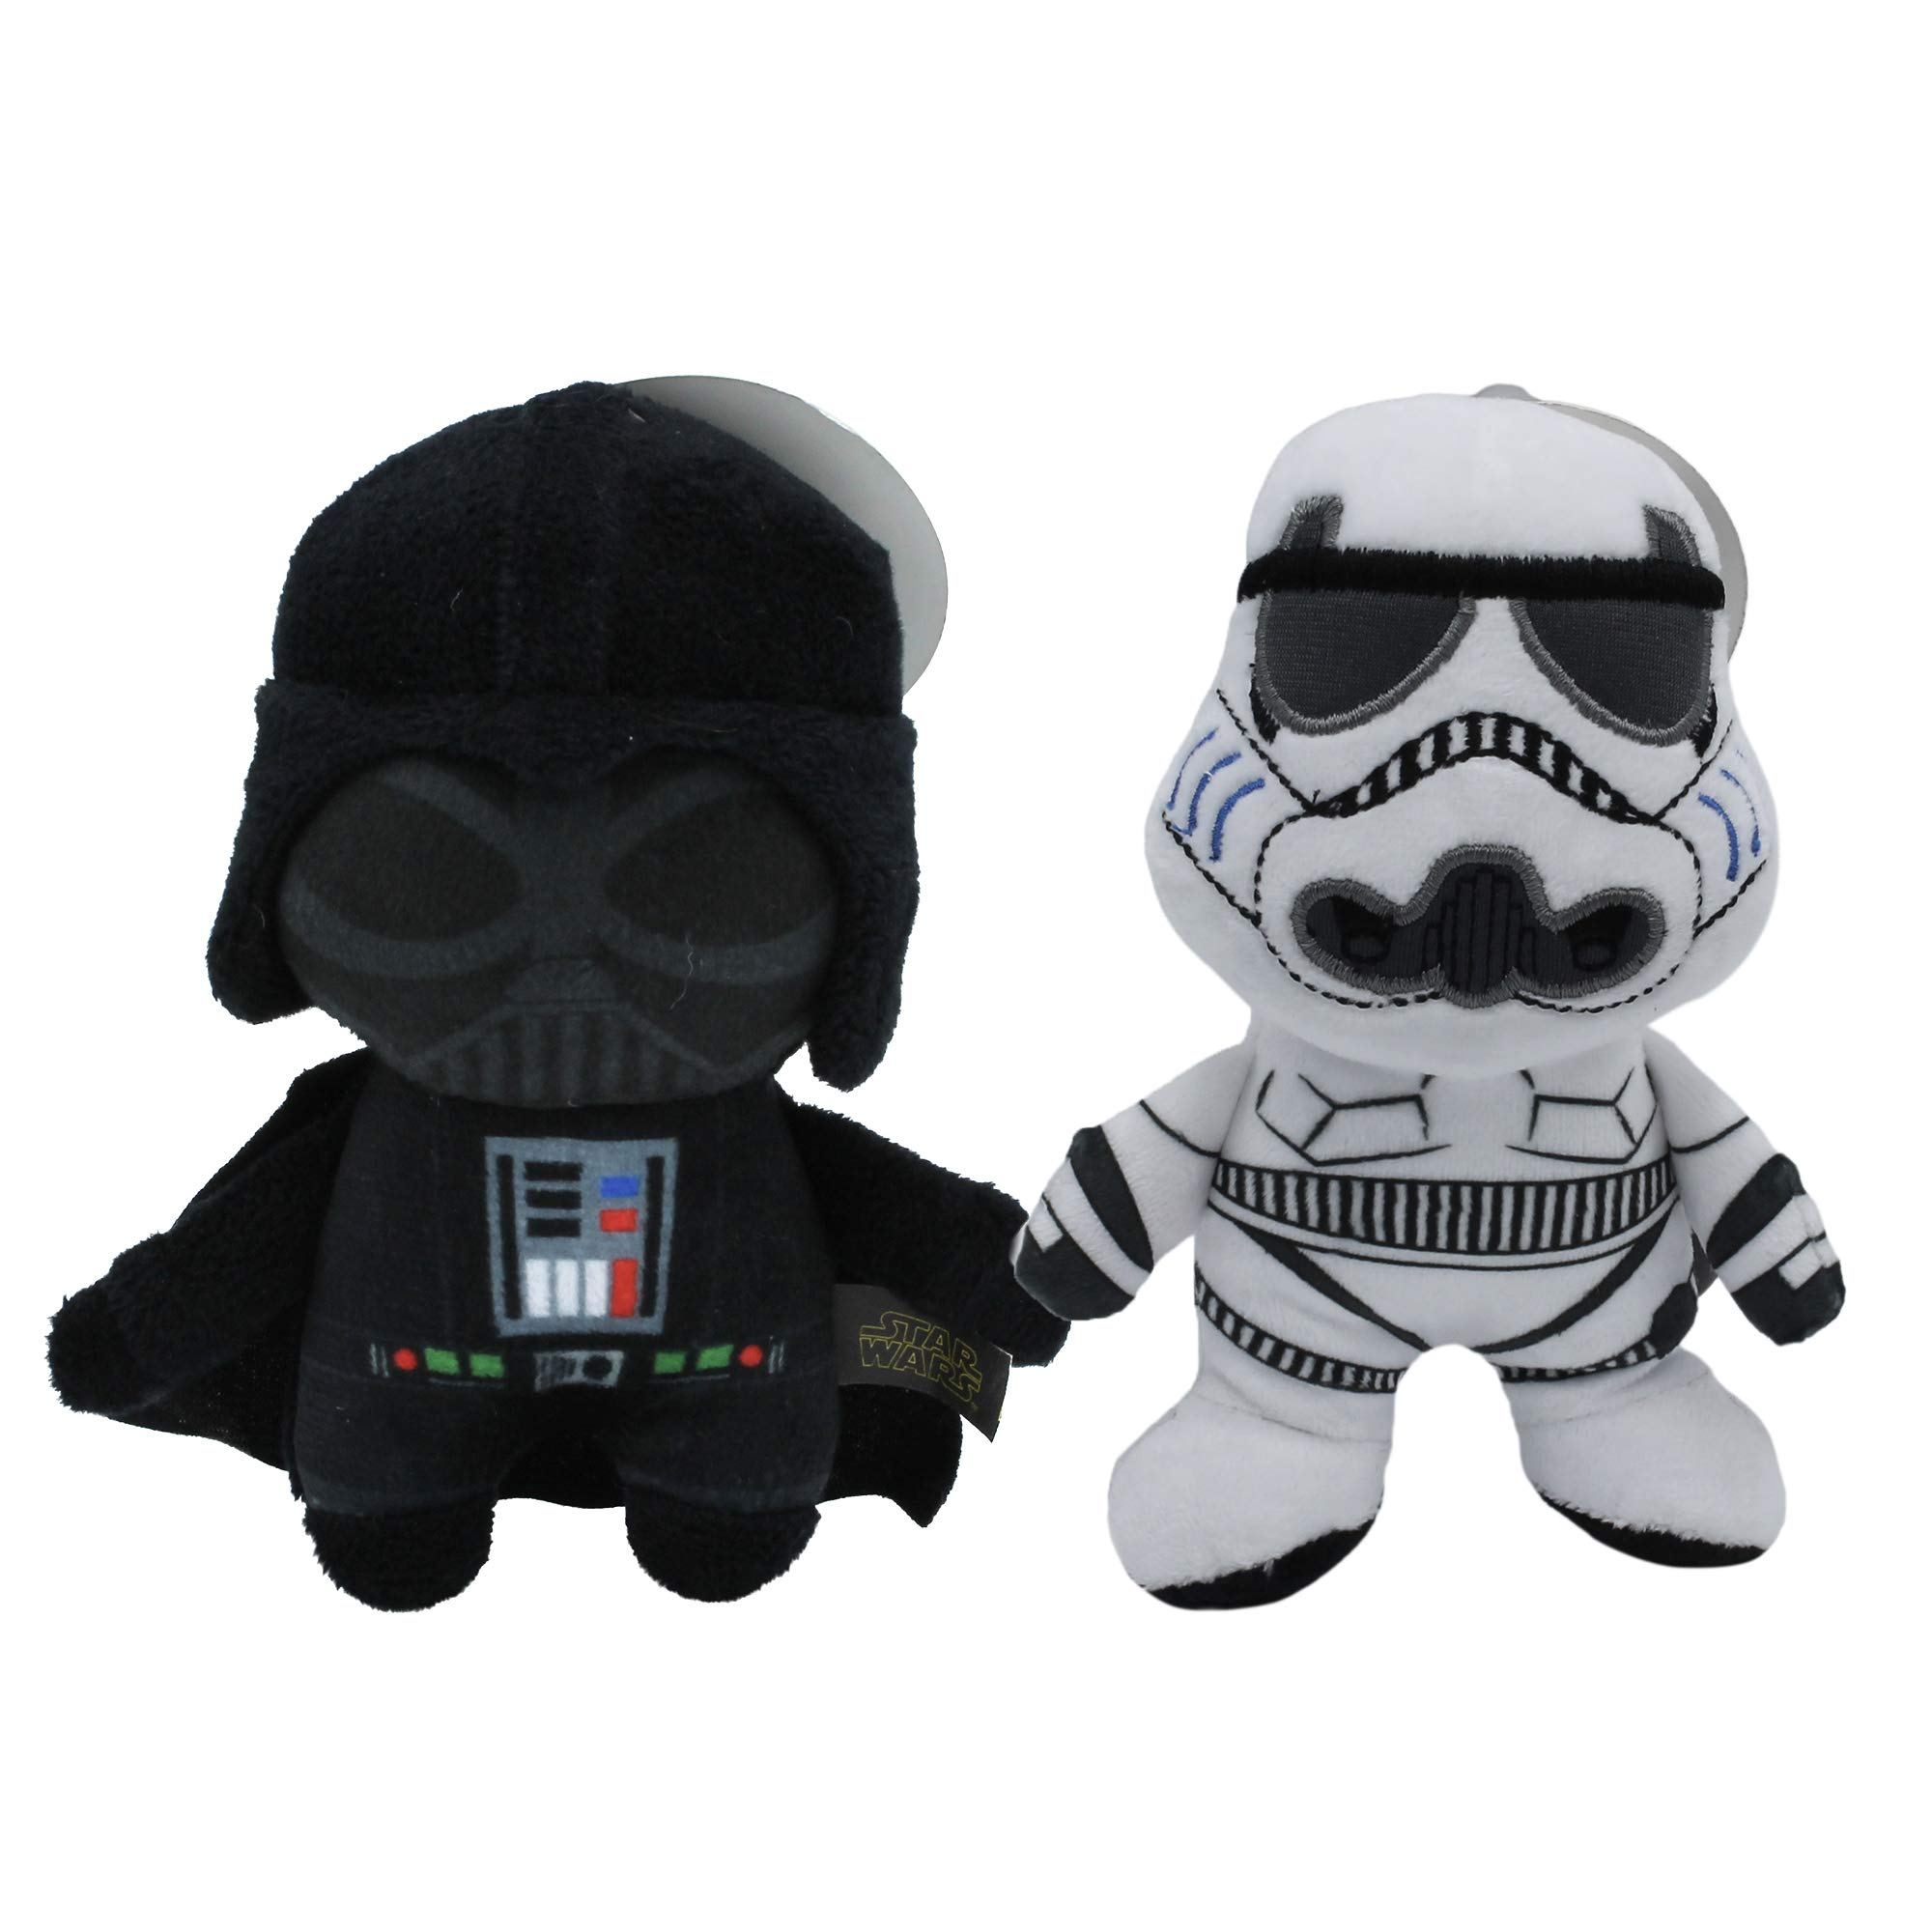 Star Wars Dog Toys Combo Pack Darth Vader and Storm Trooper Medium Size Dog Toys | Two Dog Plush Toys, Star Wars Dog Chew Toys for All Dogs | Cute and Soft Star Wars Plush Toys for Dogs